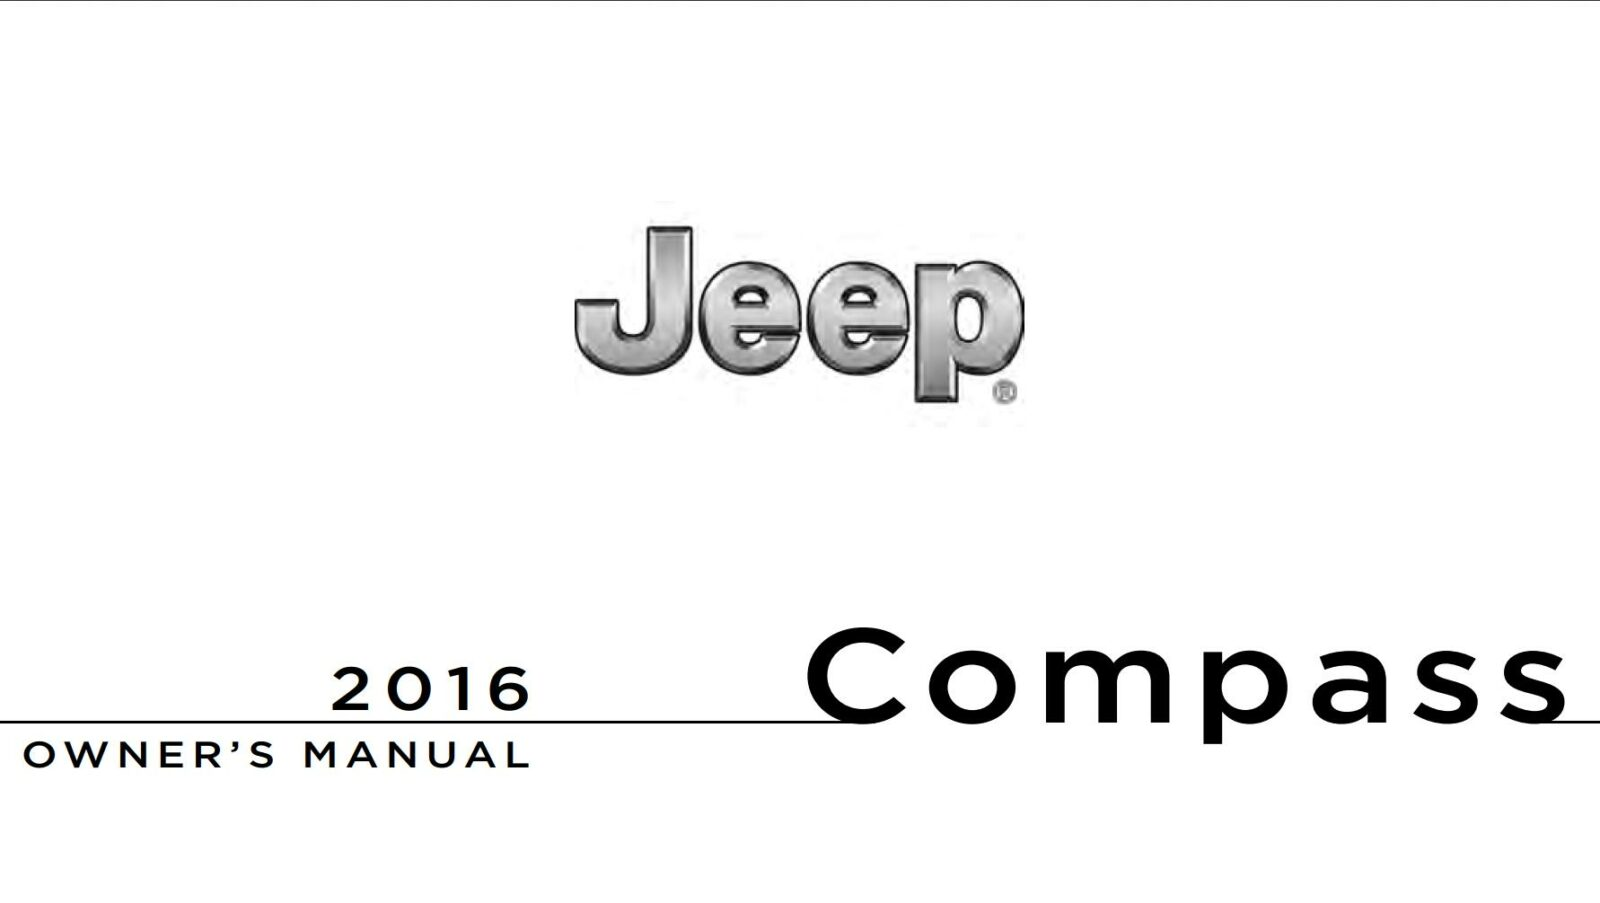 Jeep Compass 2016 Owner's Manual